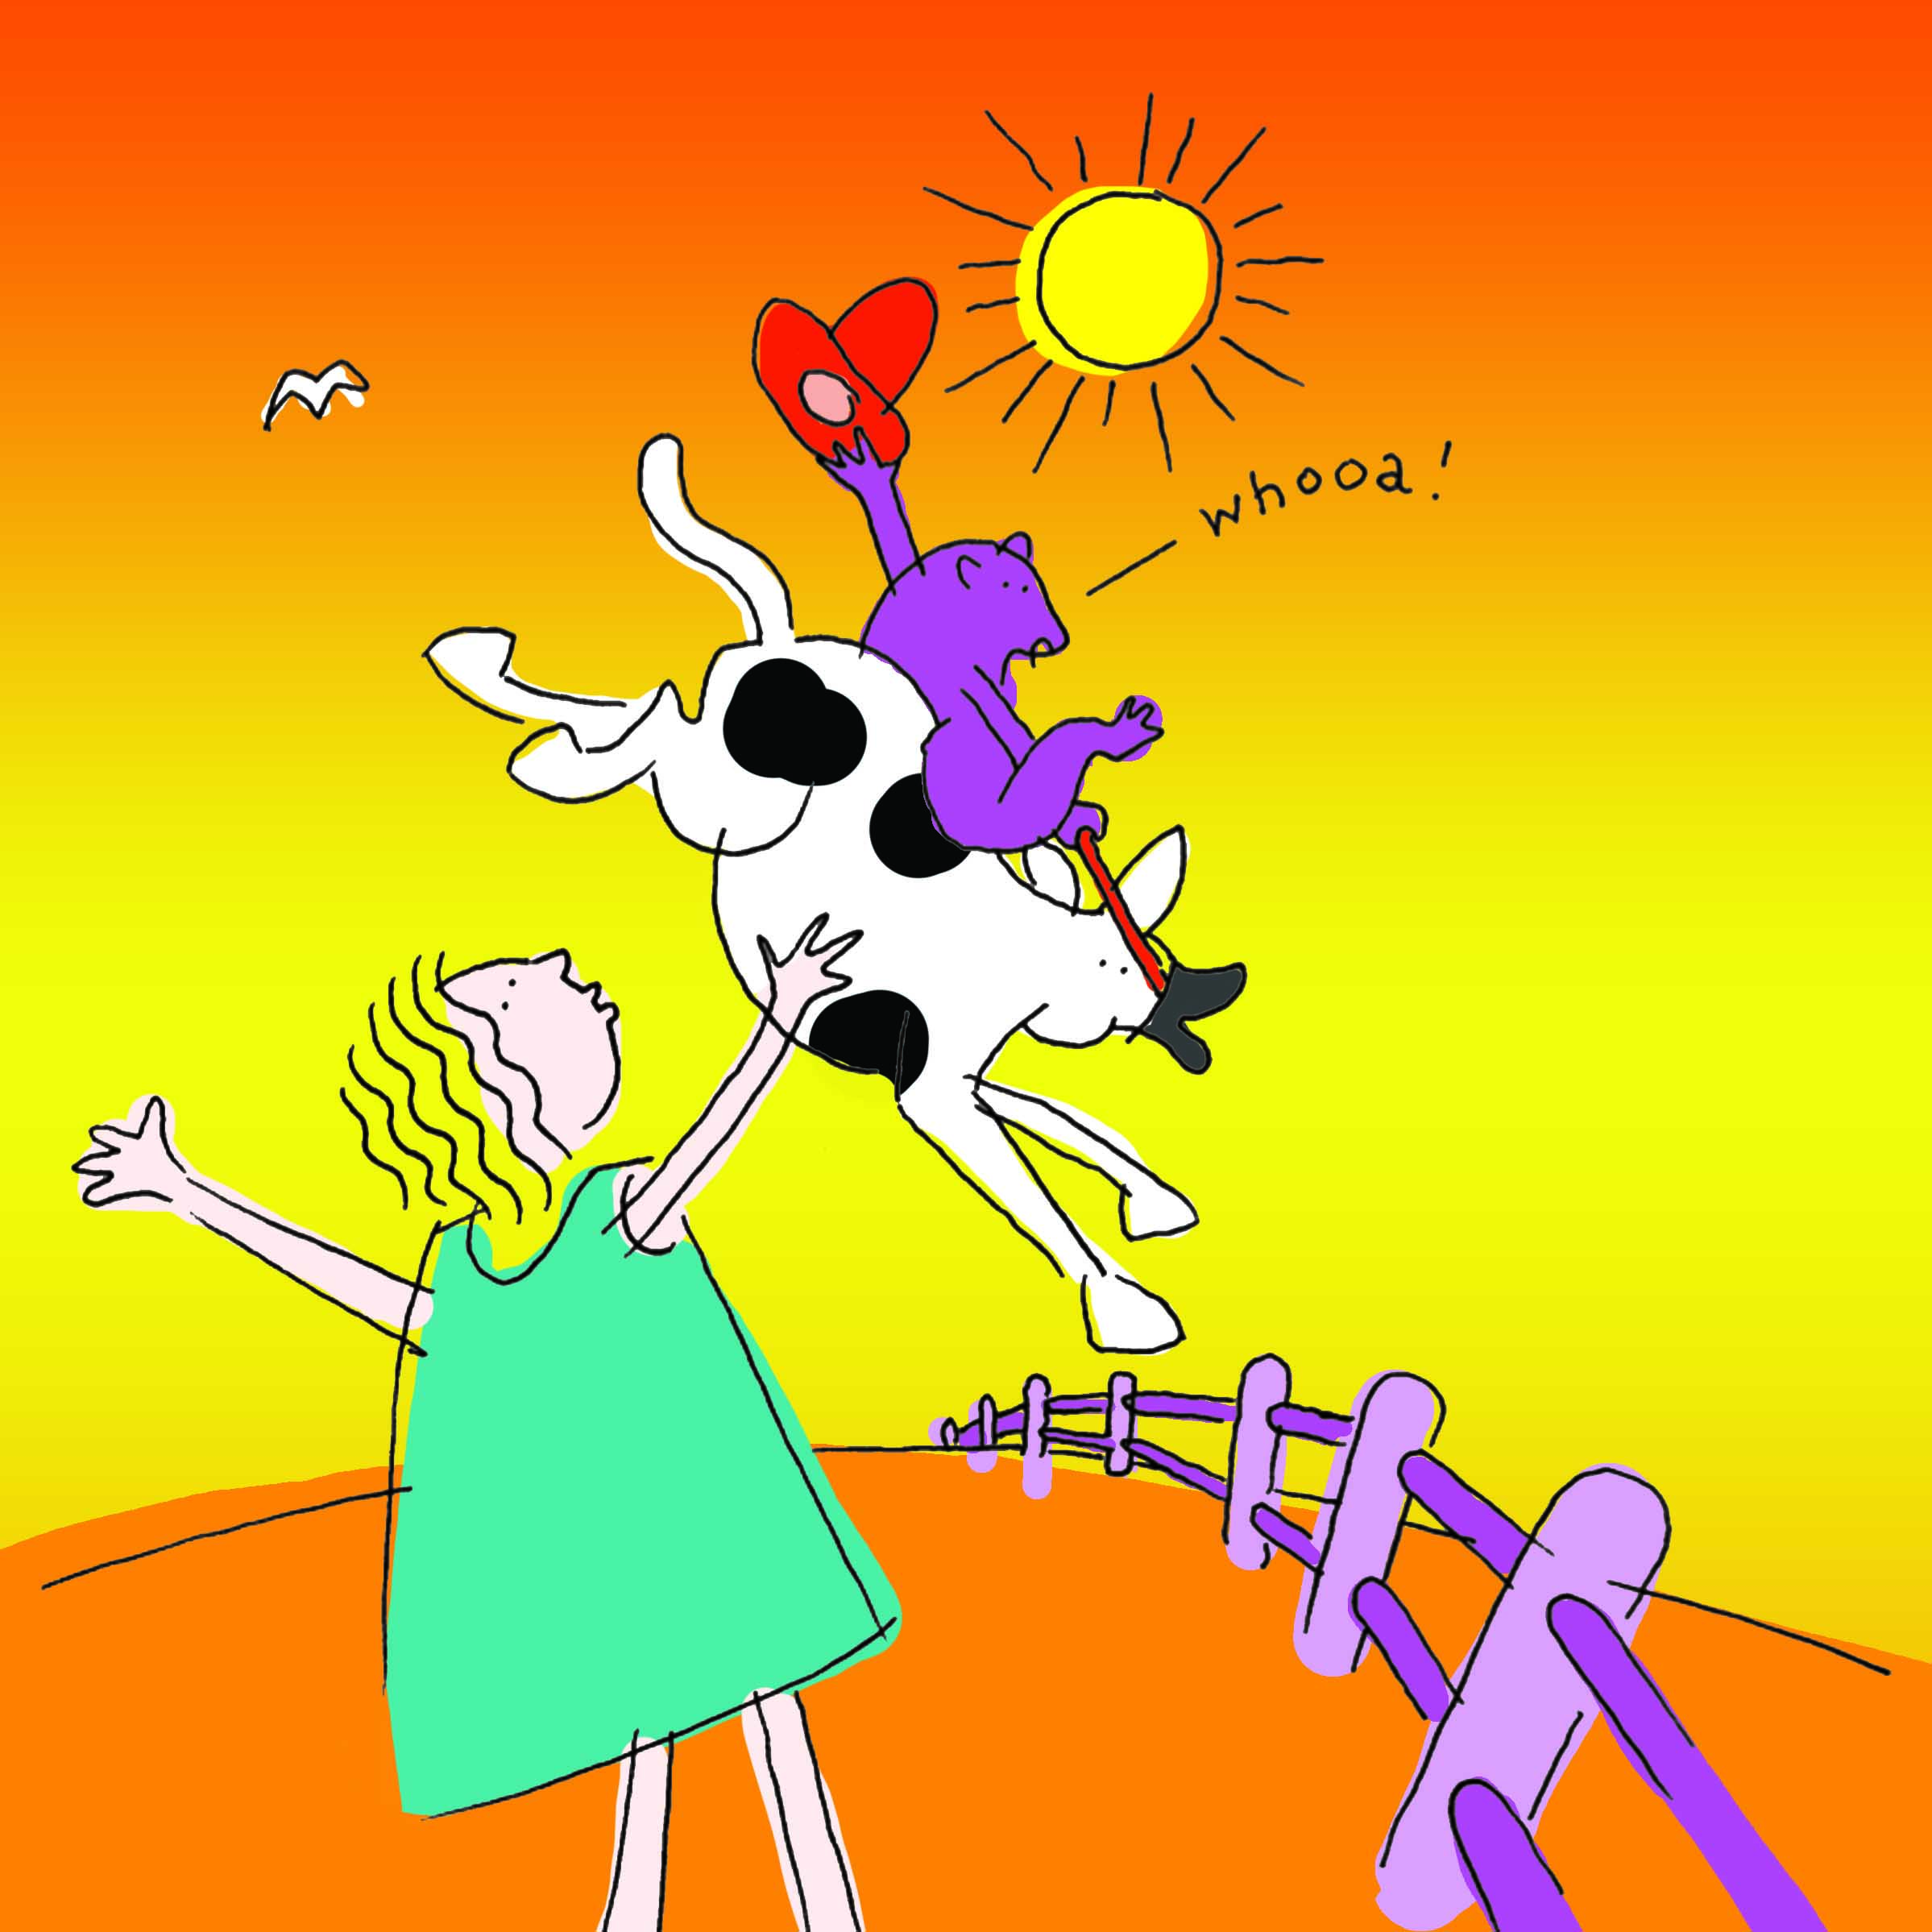 Children's book illustration with a cow in the outback.